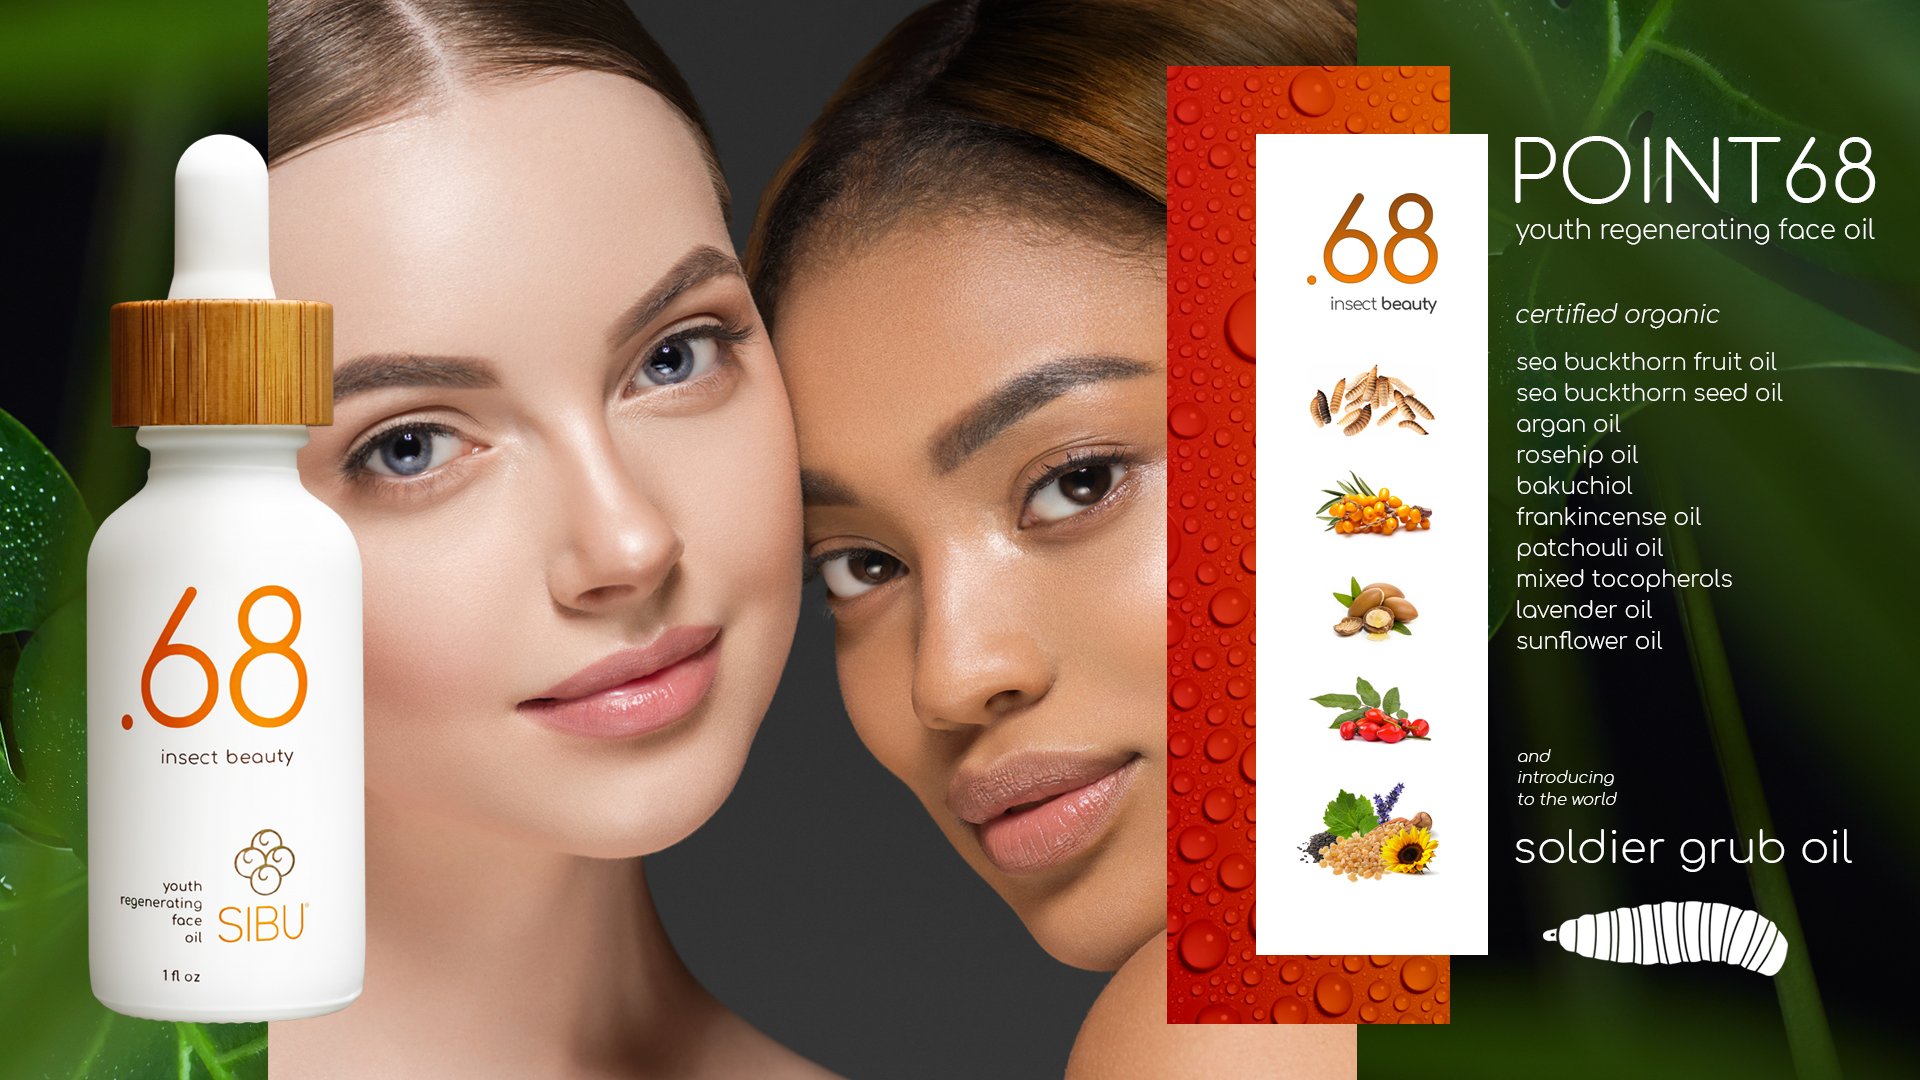 Point68 insect beauty youth regenerating face oil for all skin types